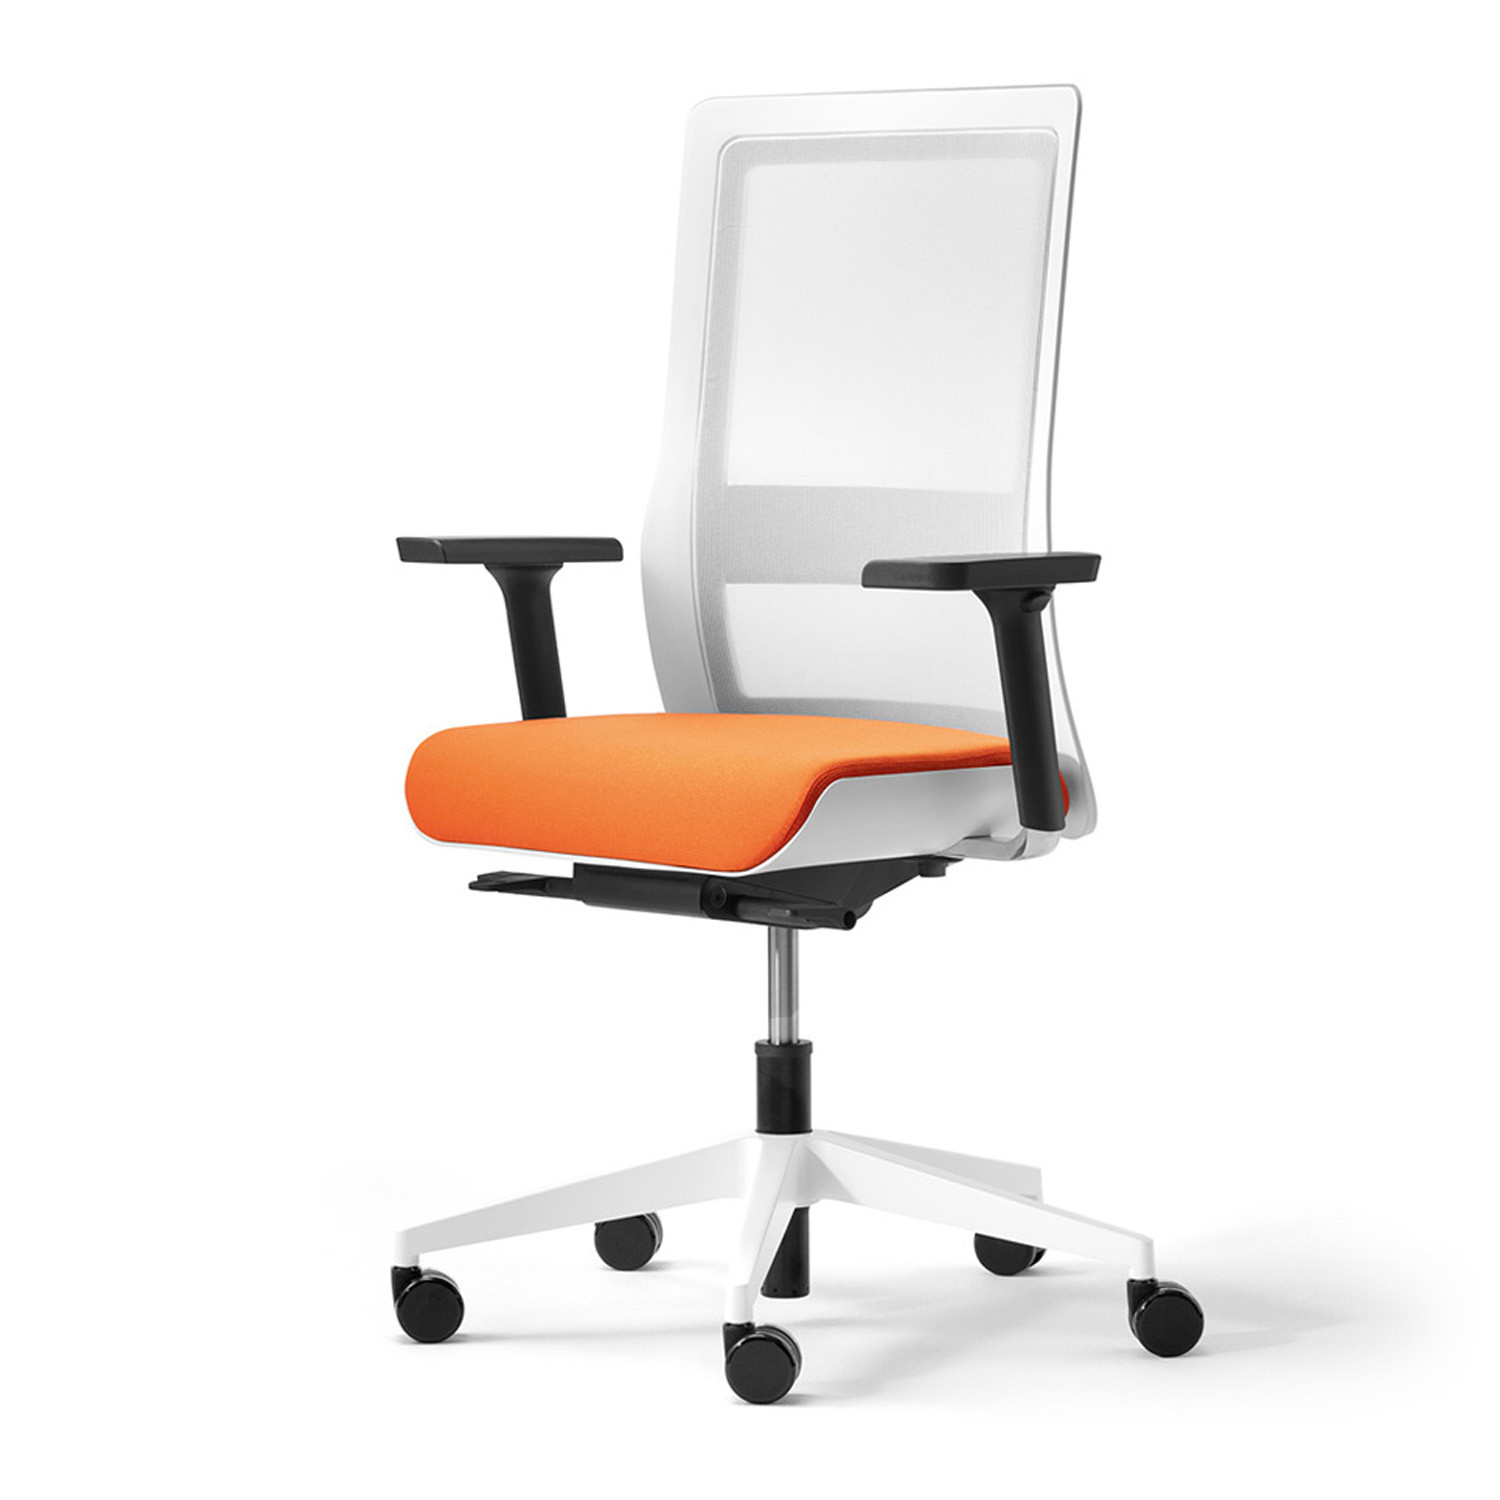 white frame office chair. Poi Office Chair With White Frame A